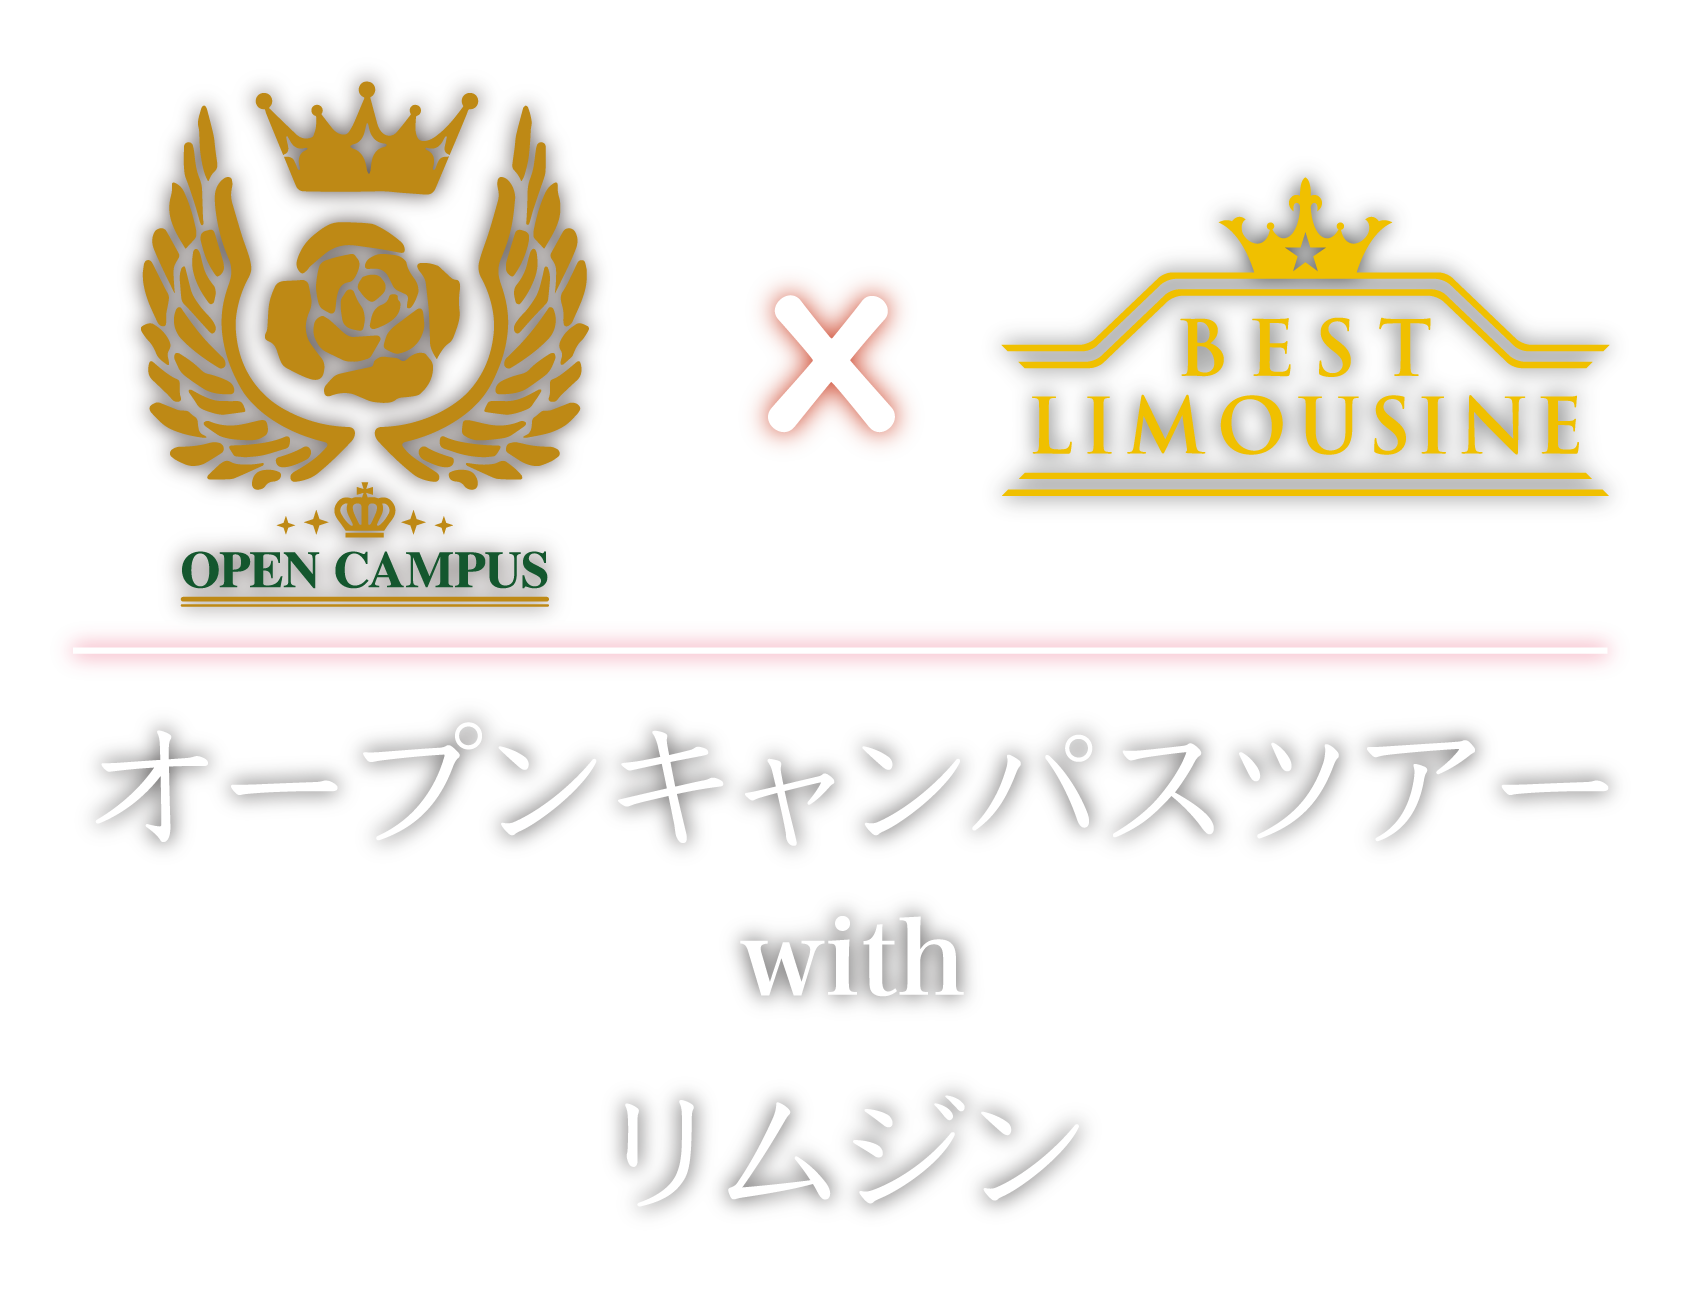 KING OF PRISM ✕ BEST LIMOUSIN オープンキャンパスツアー with リムジン